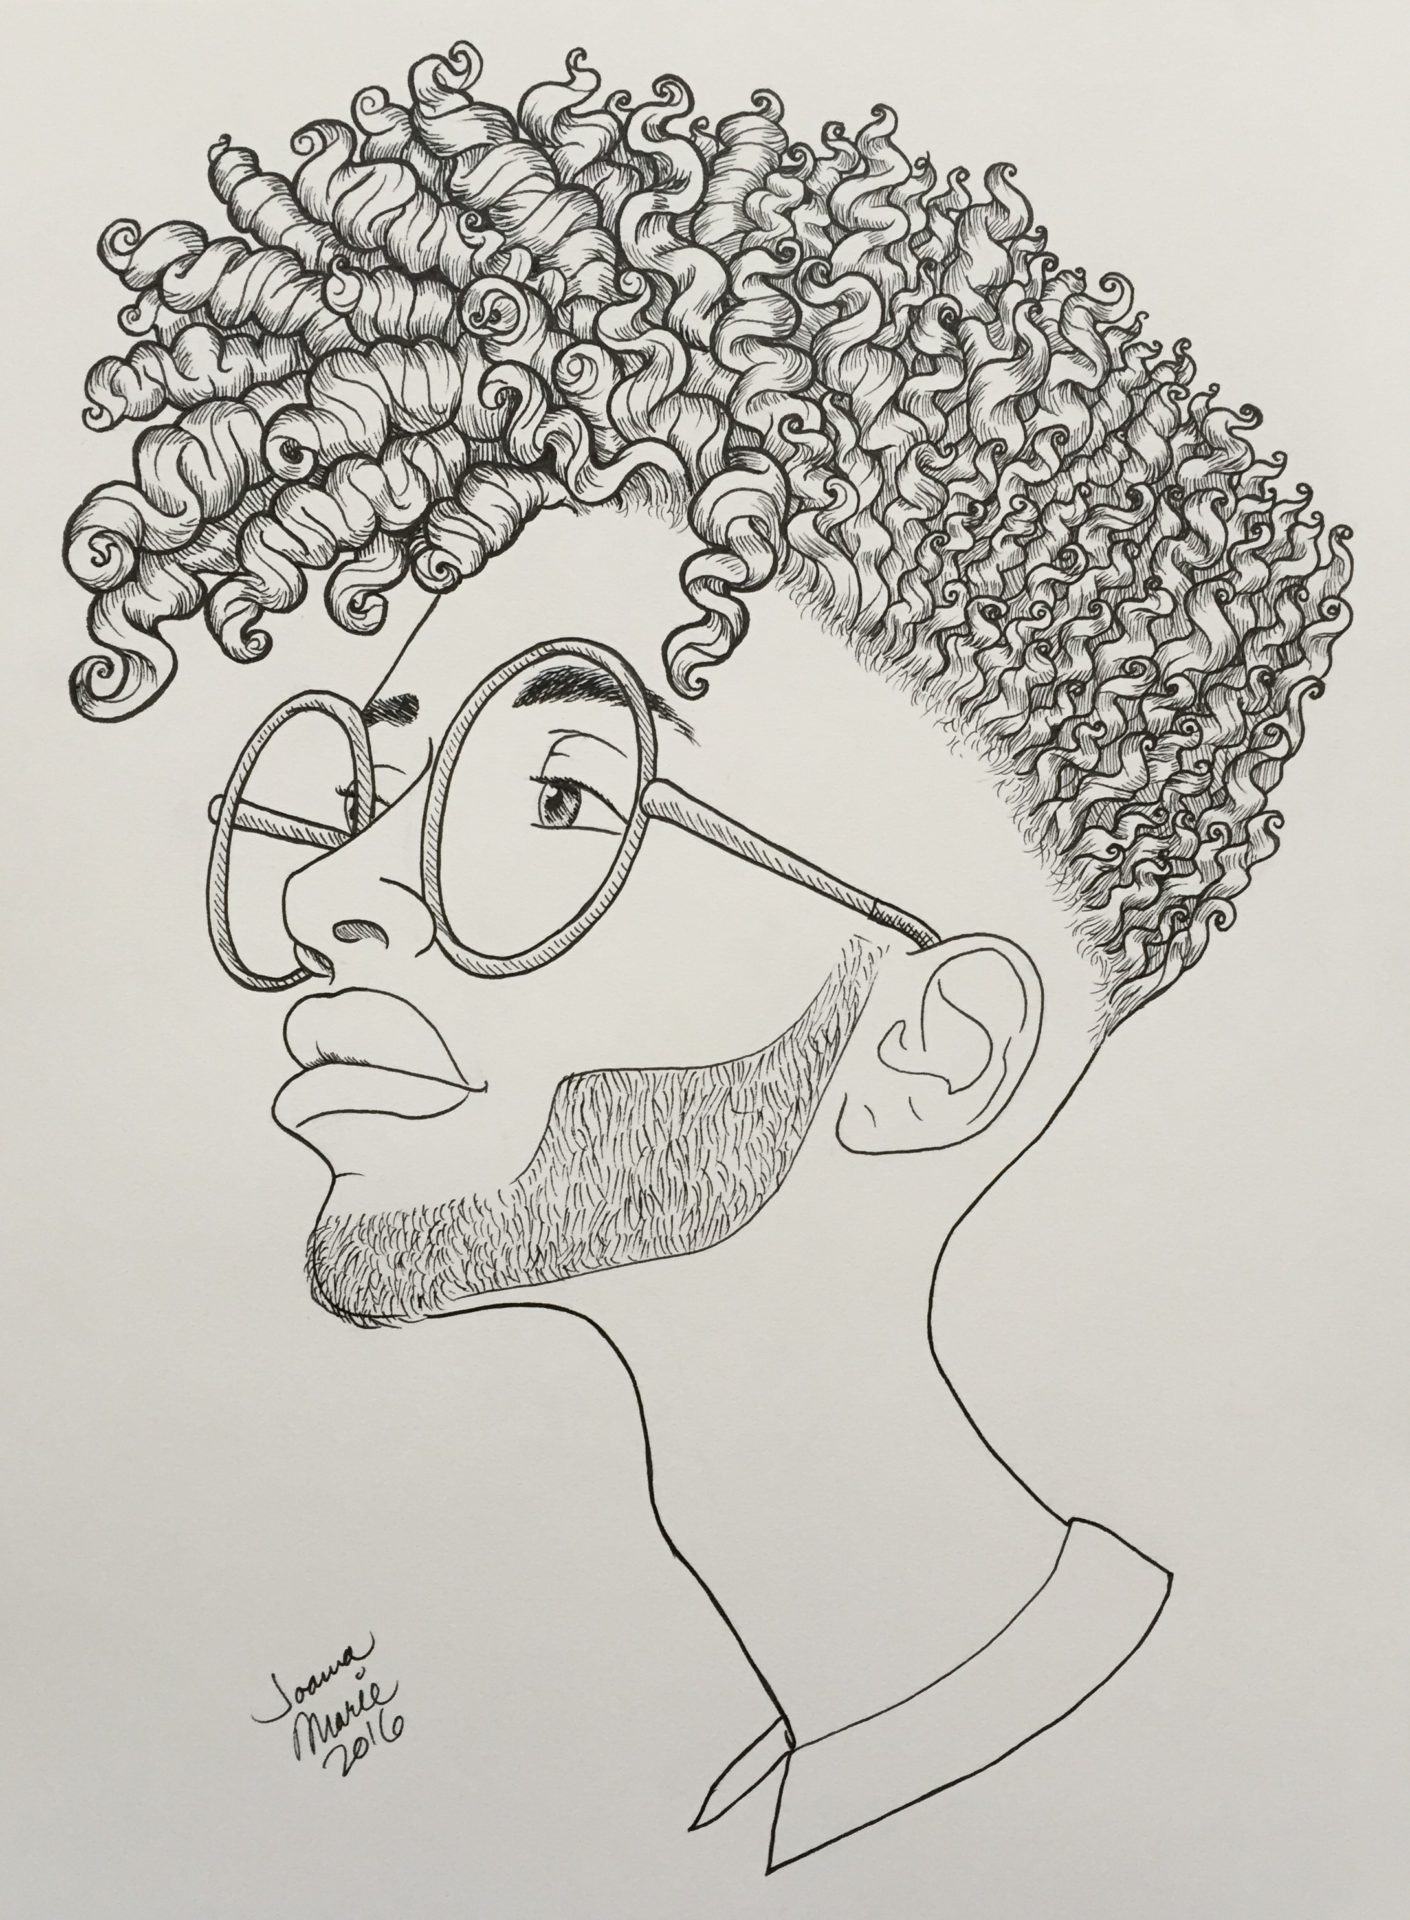 Nerdchic, 2016, 9x12, Pen & Ink